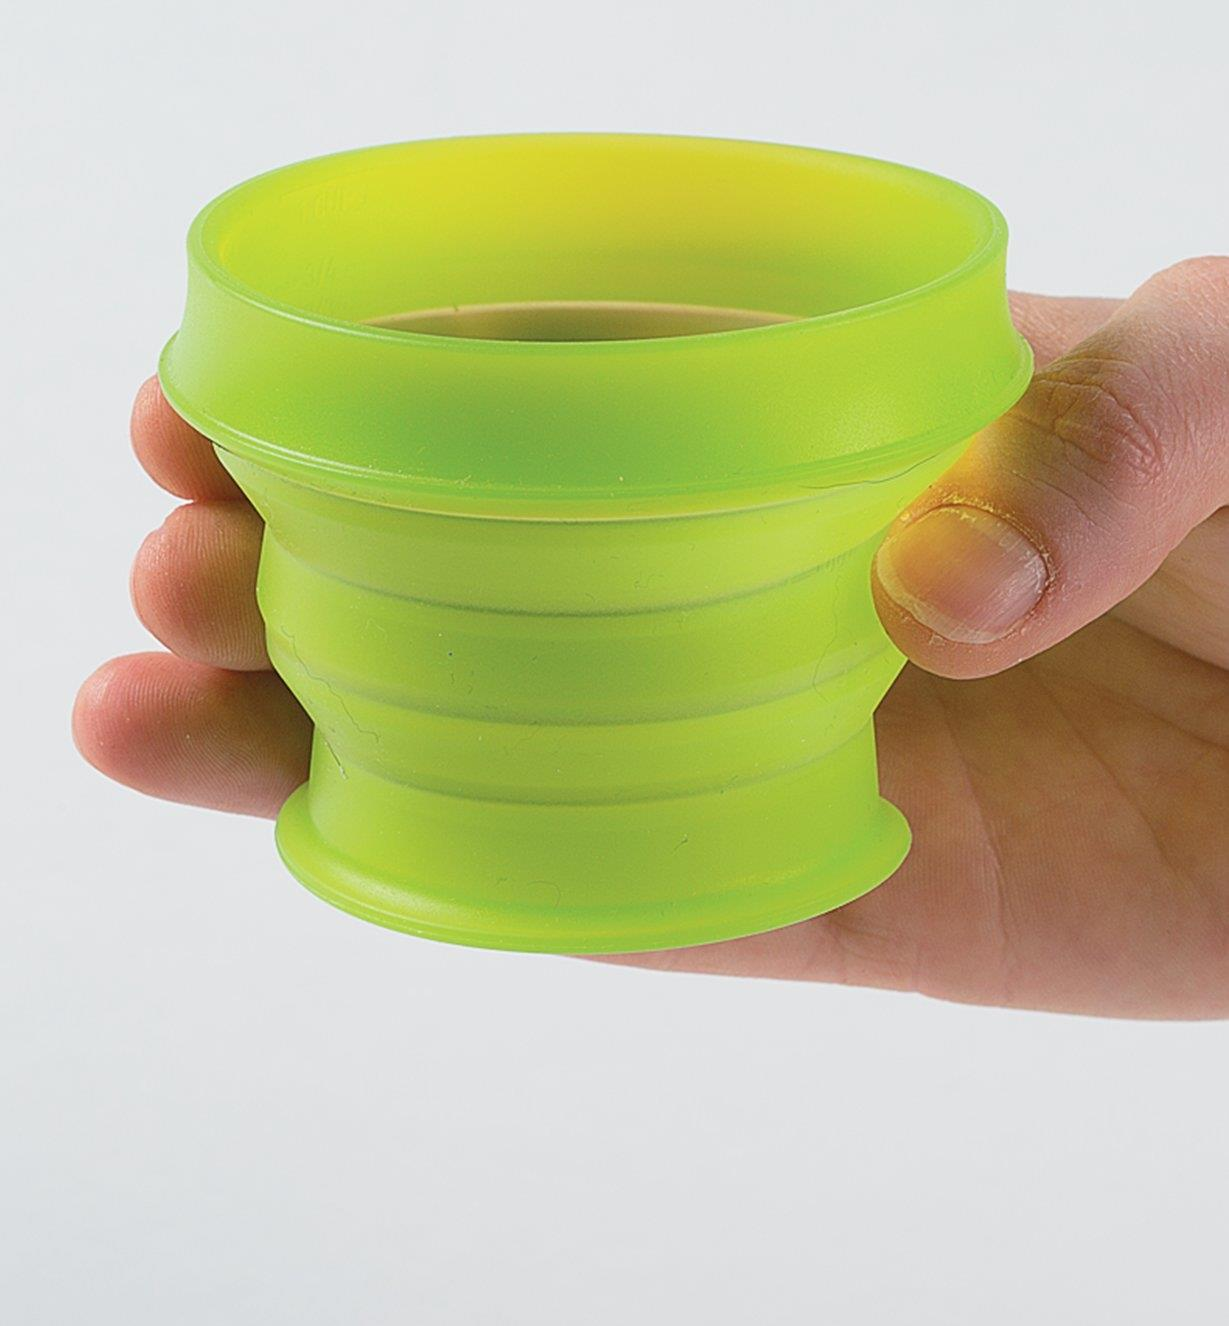 Holding a Green Collapsible Cup in a hand